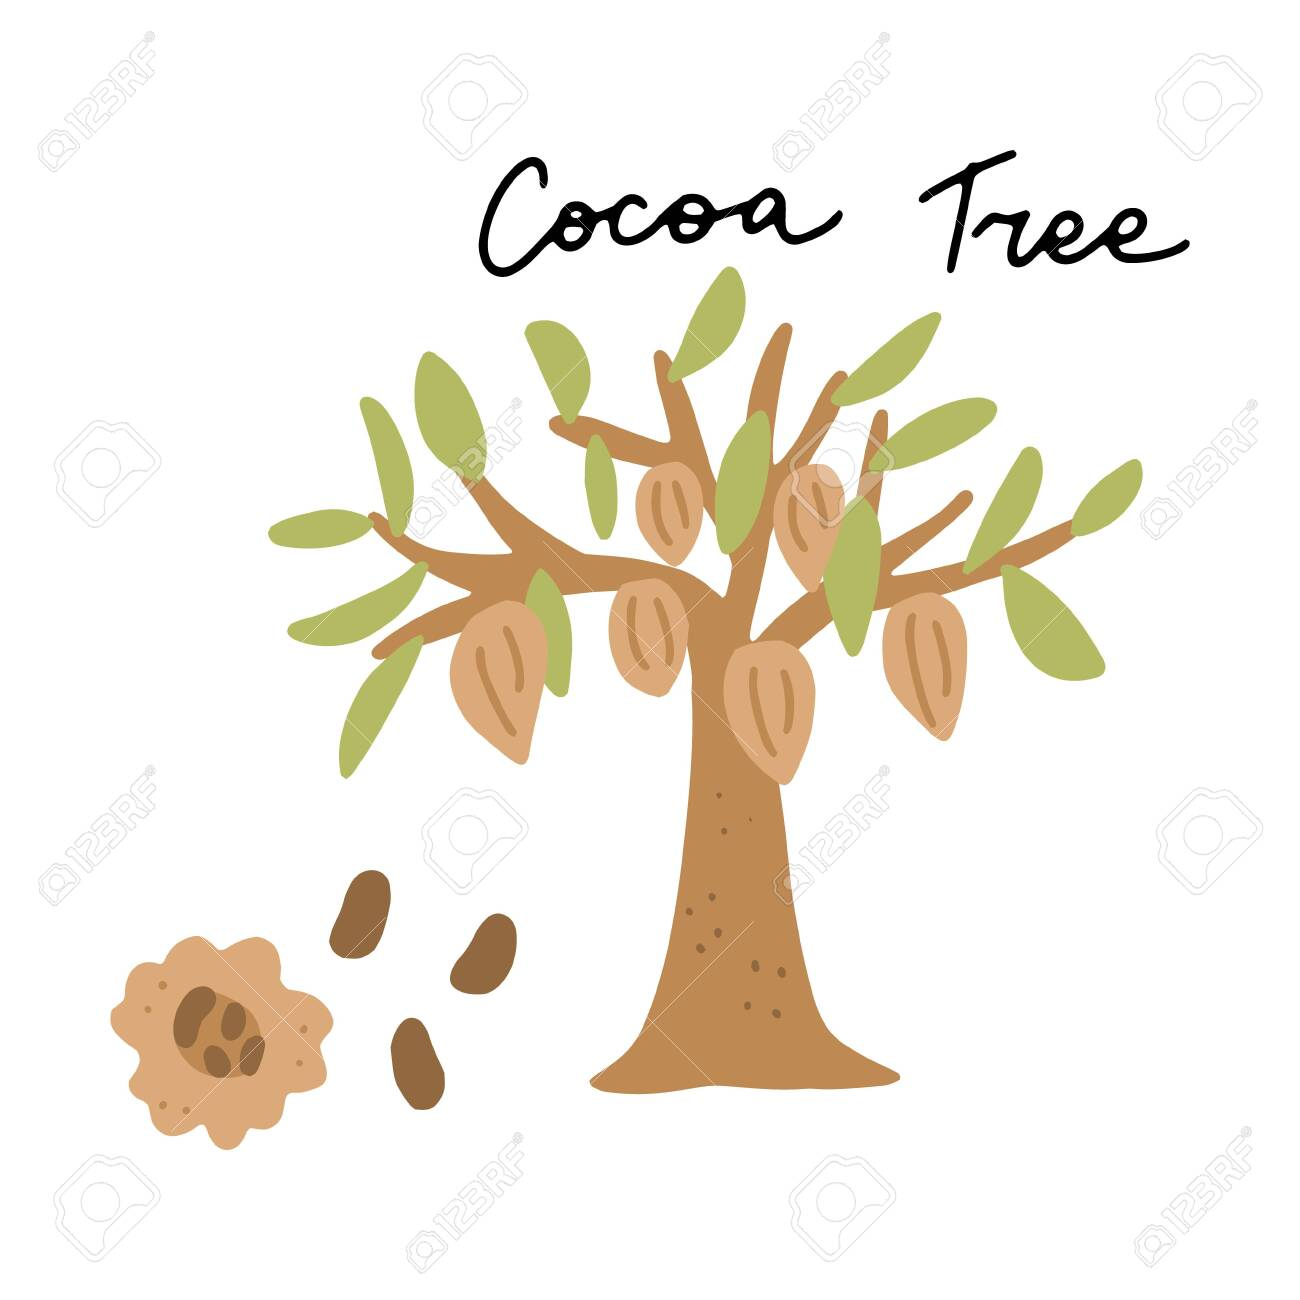 South America Landmark Cocoa Tree Vector Illustration Vector Royalty Free Cliparts Vectors And Stock Illustration Image 136635559